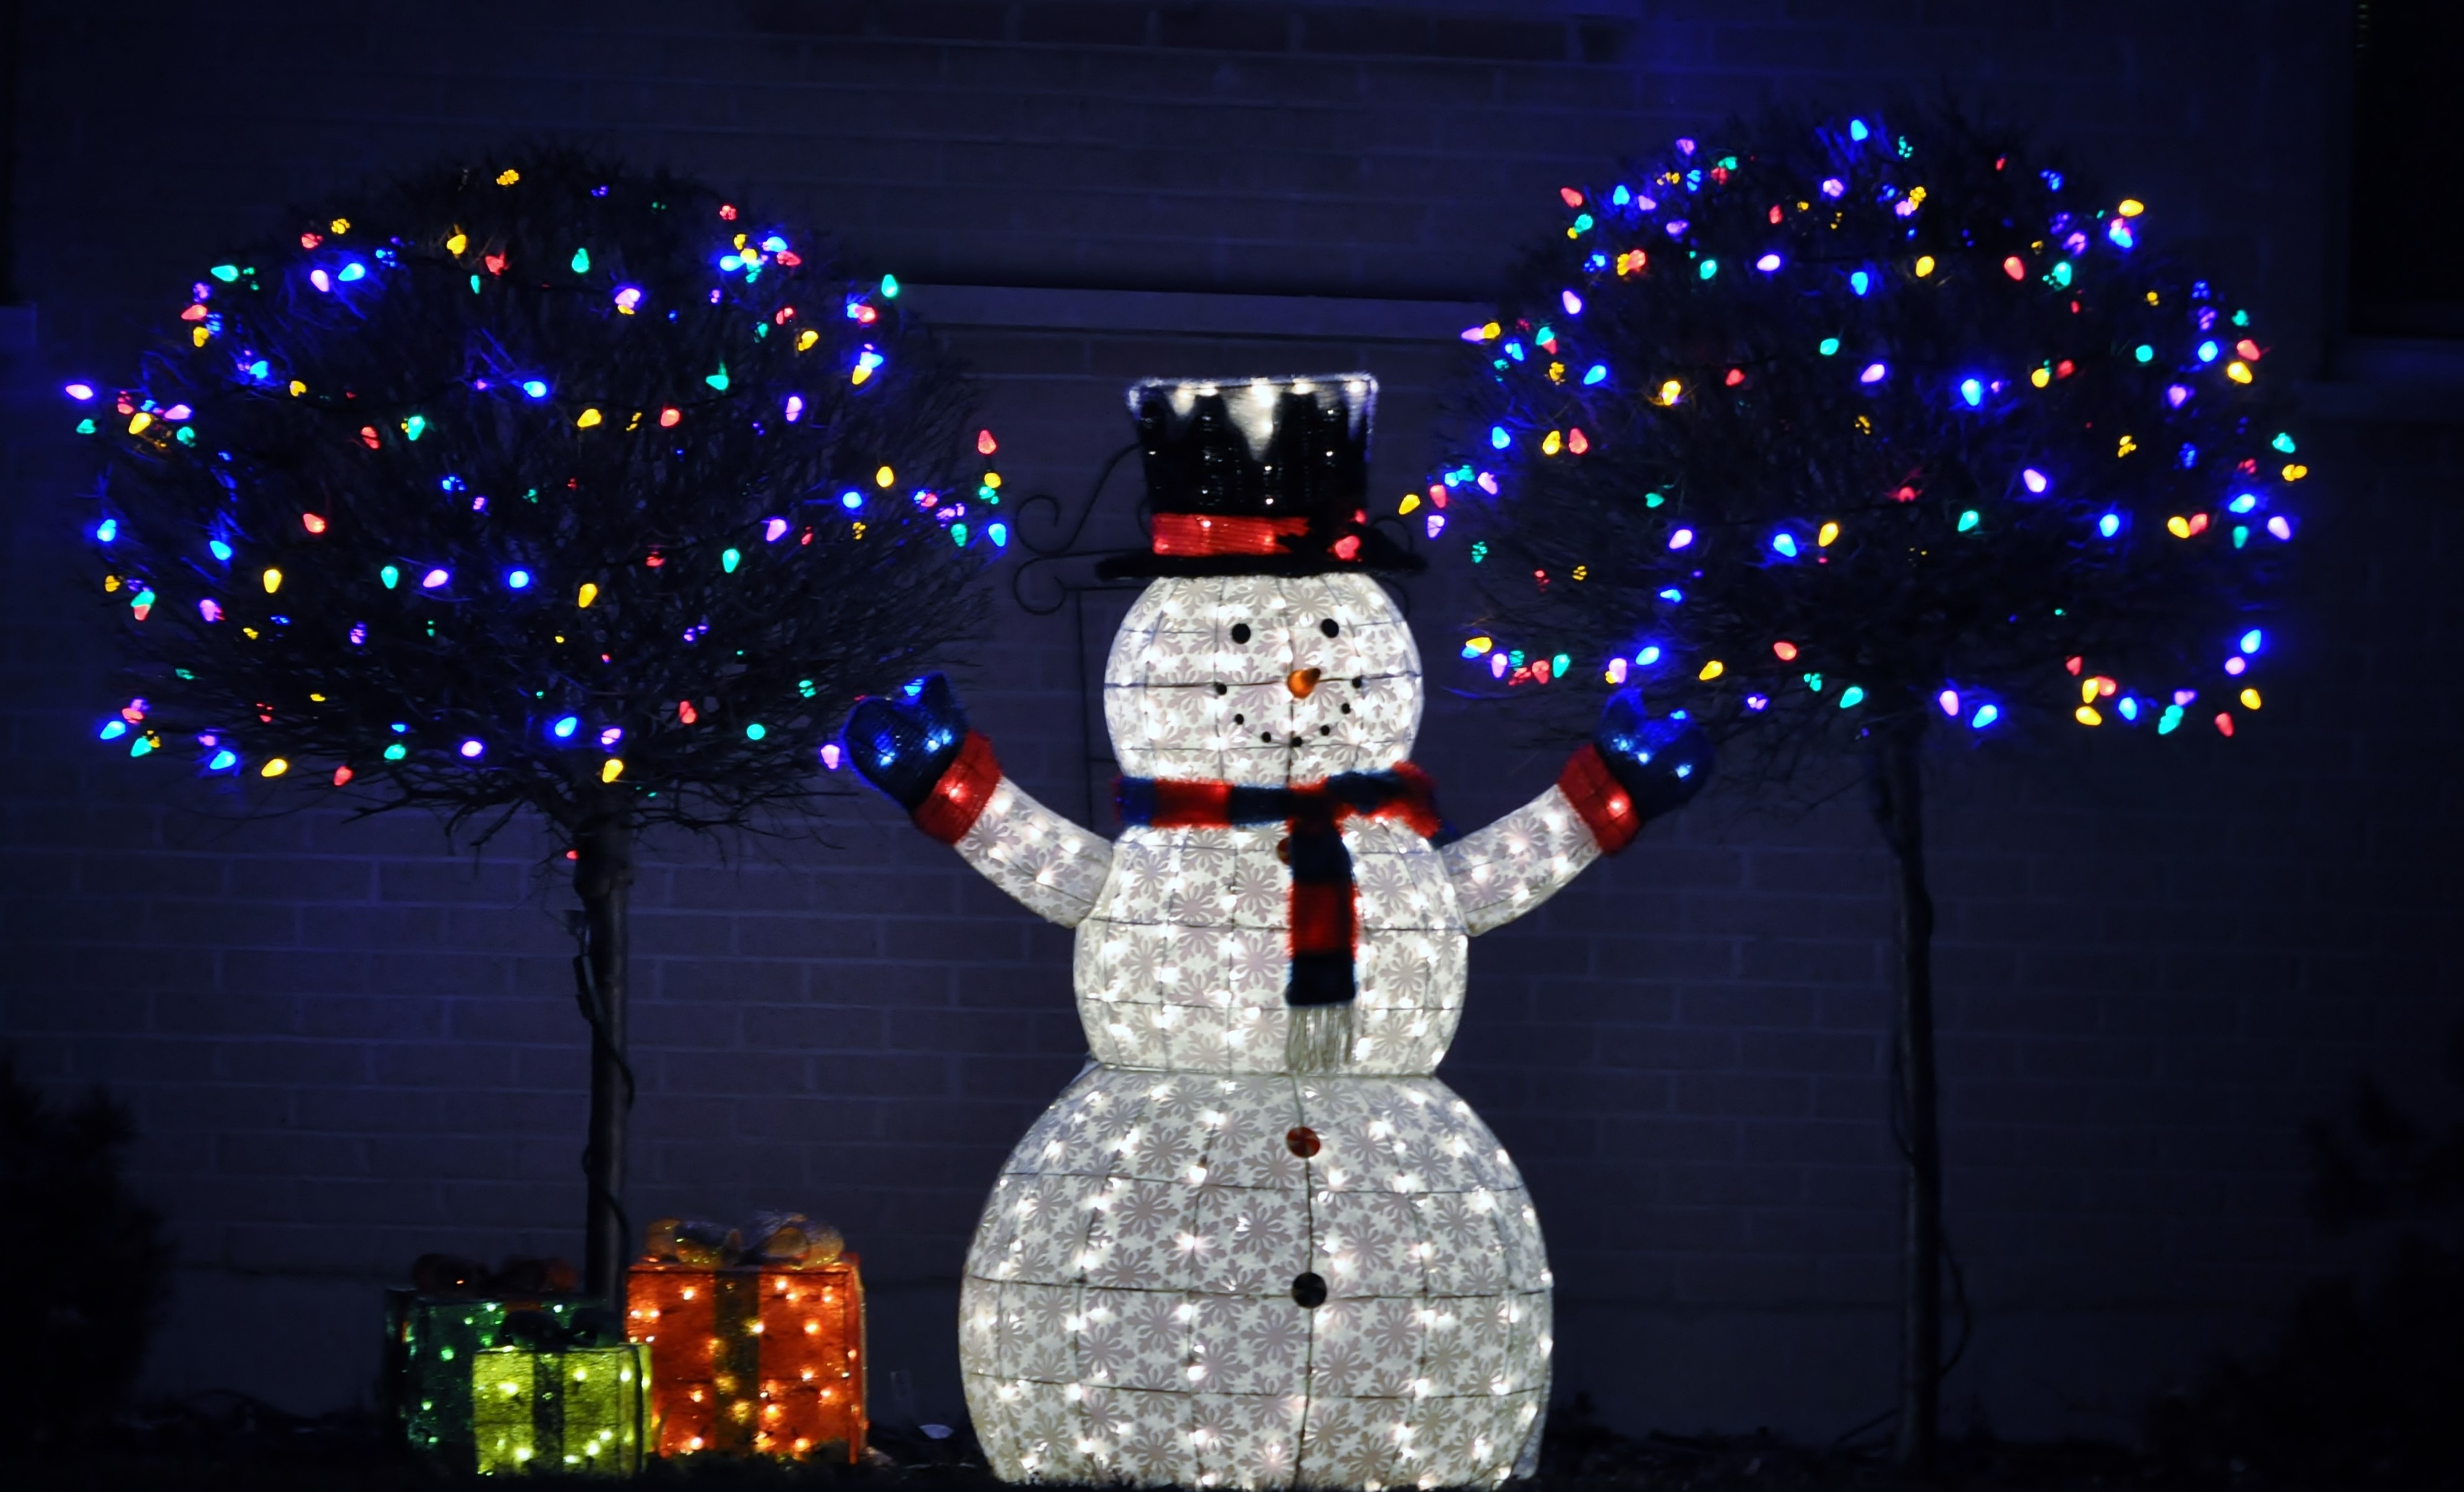 Look on the bright side with our cash-saving deals on Christmas decorations